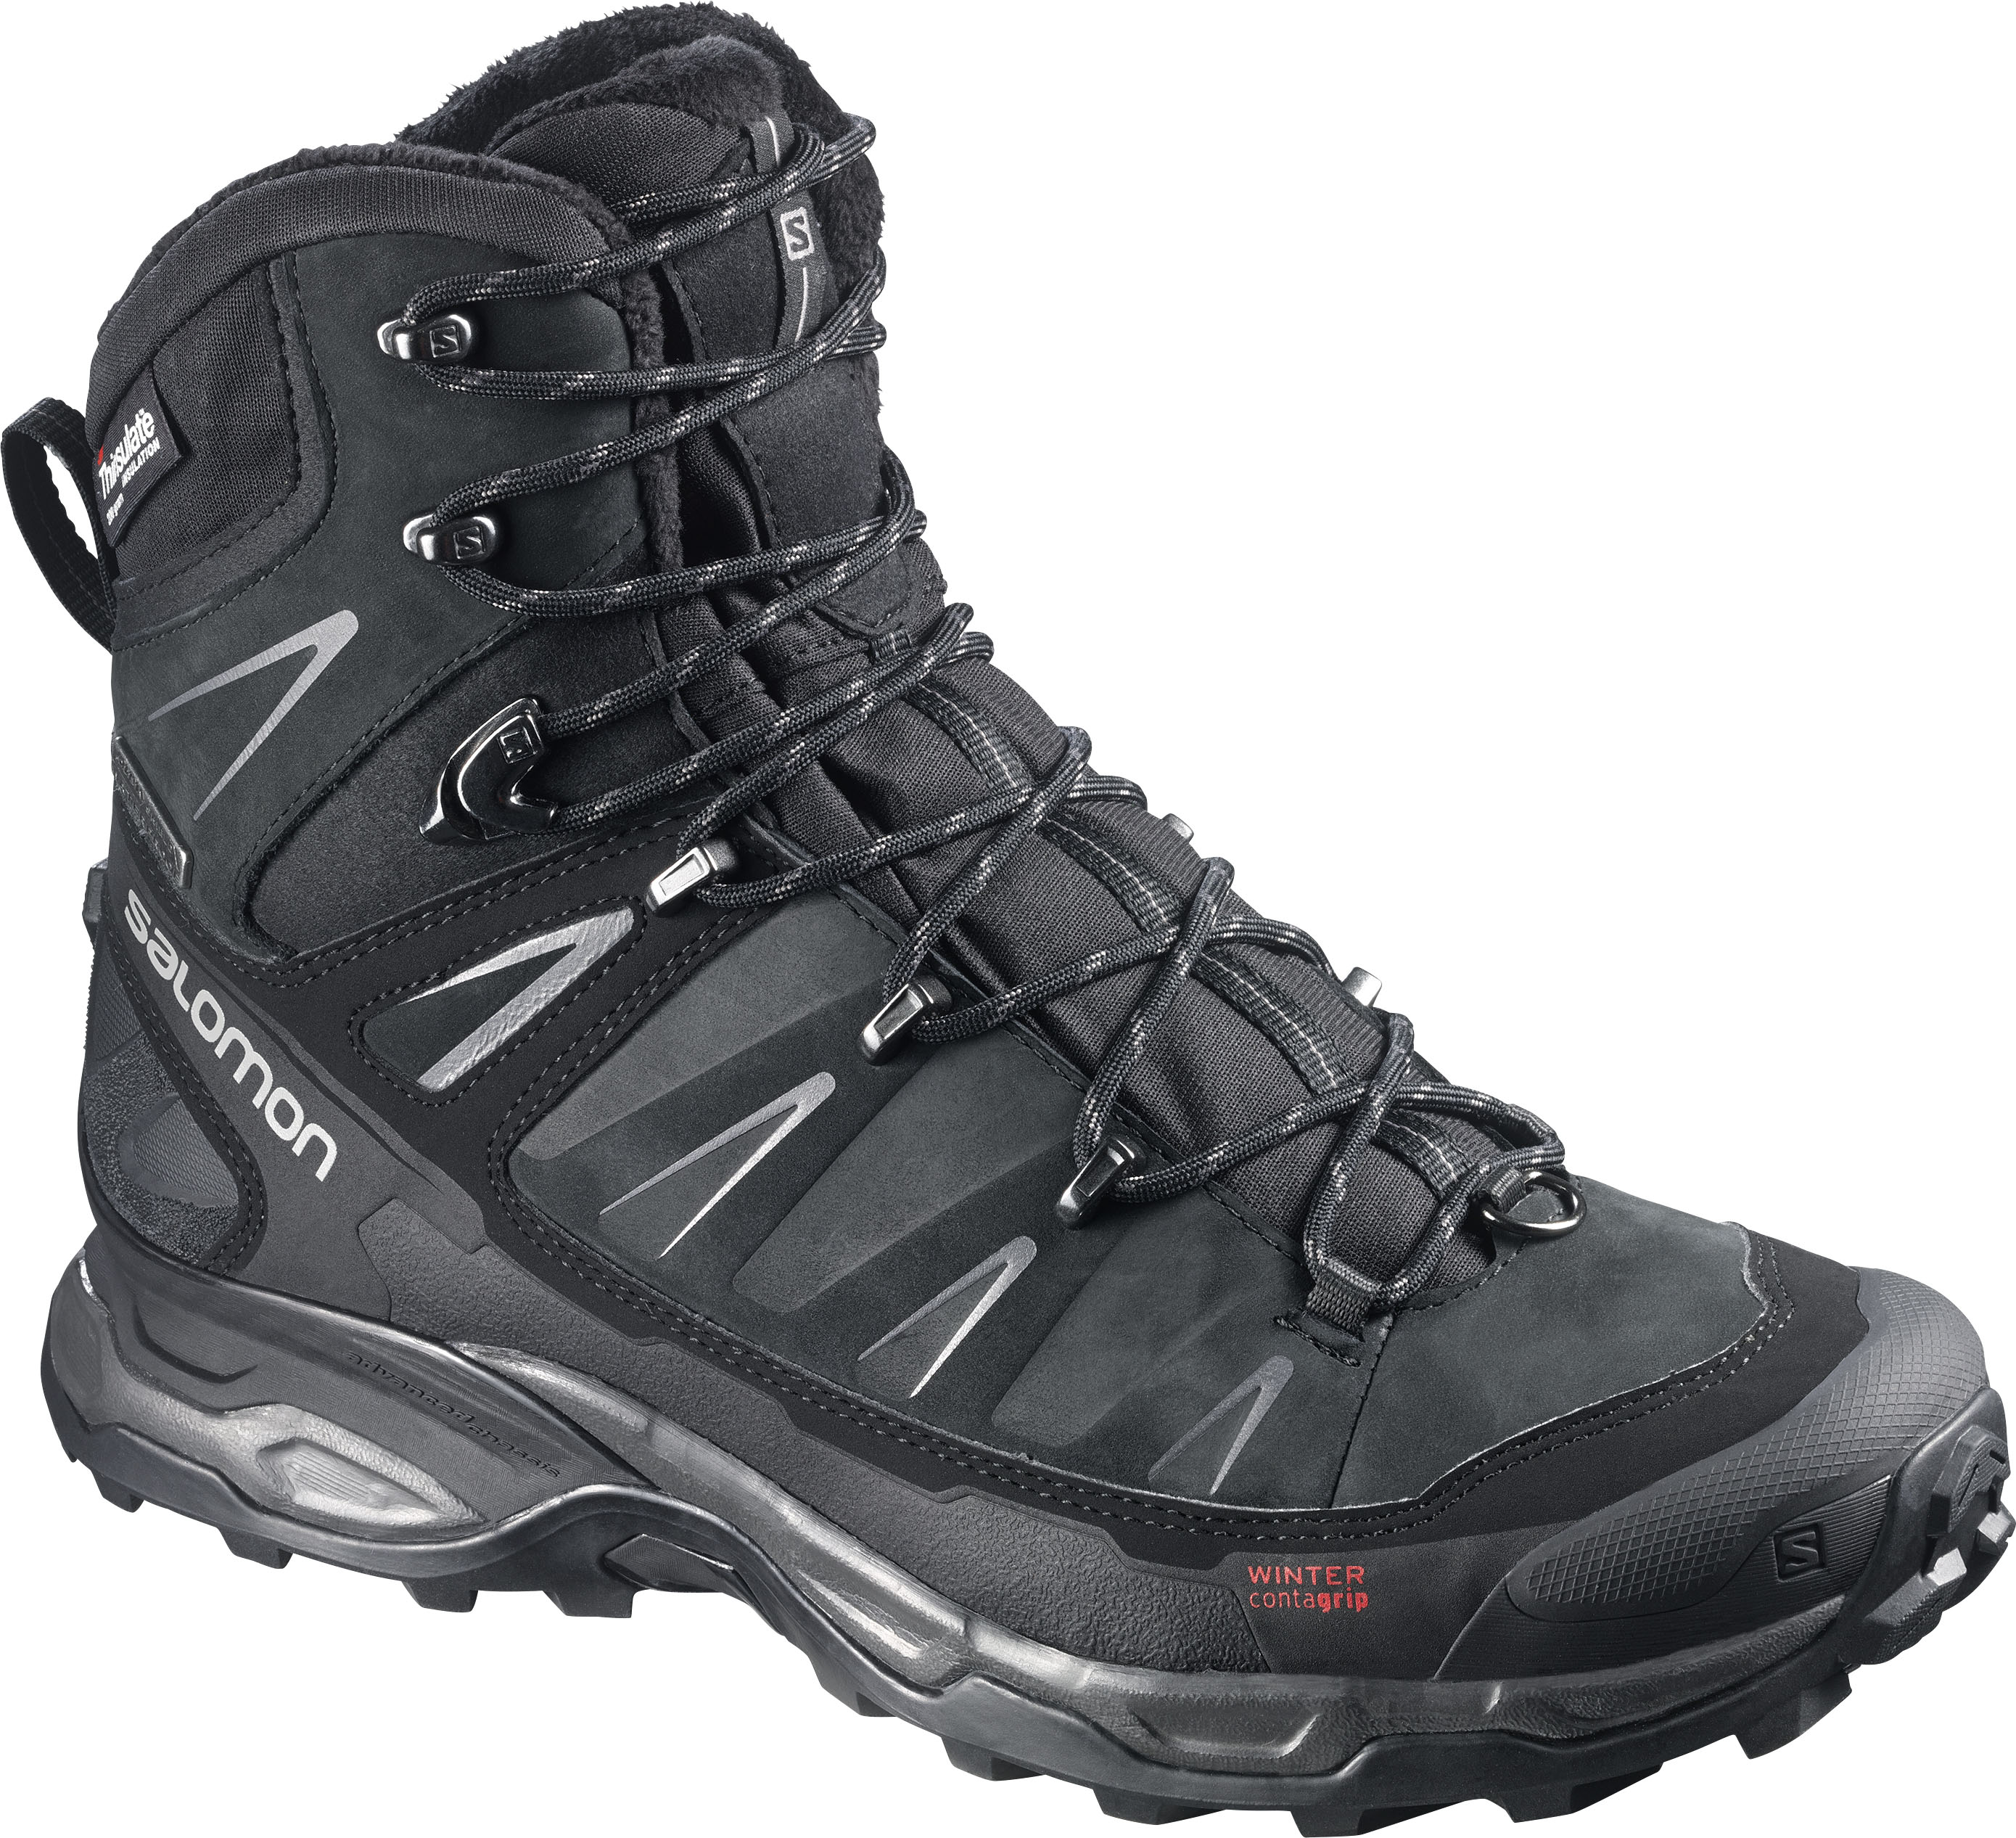 Im BERGSTEIGER Test 01/16: SALOMON X Ultra Winter CS